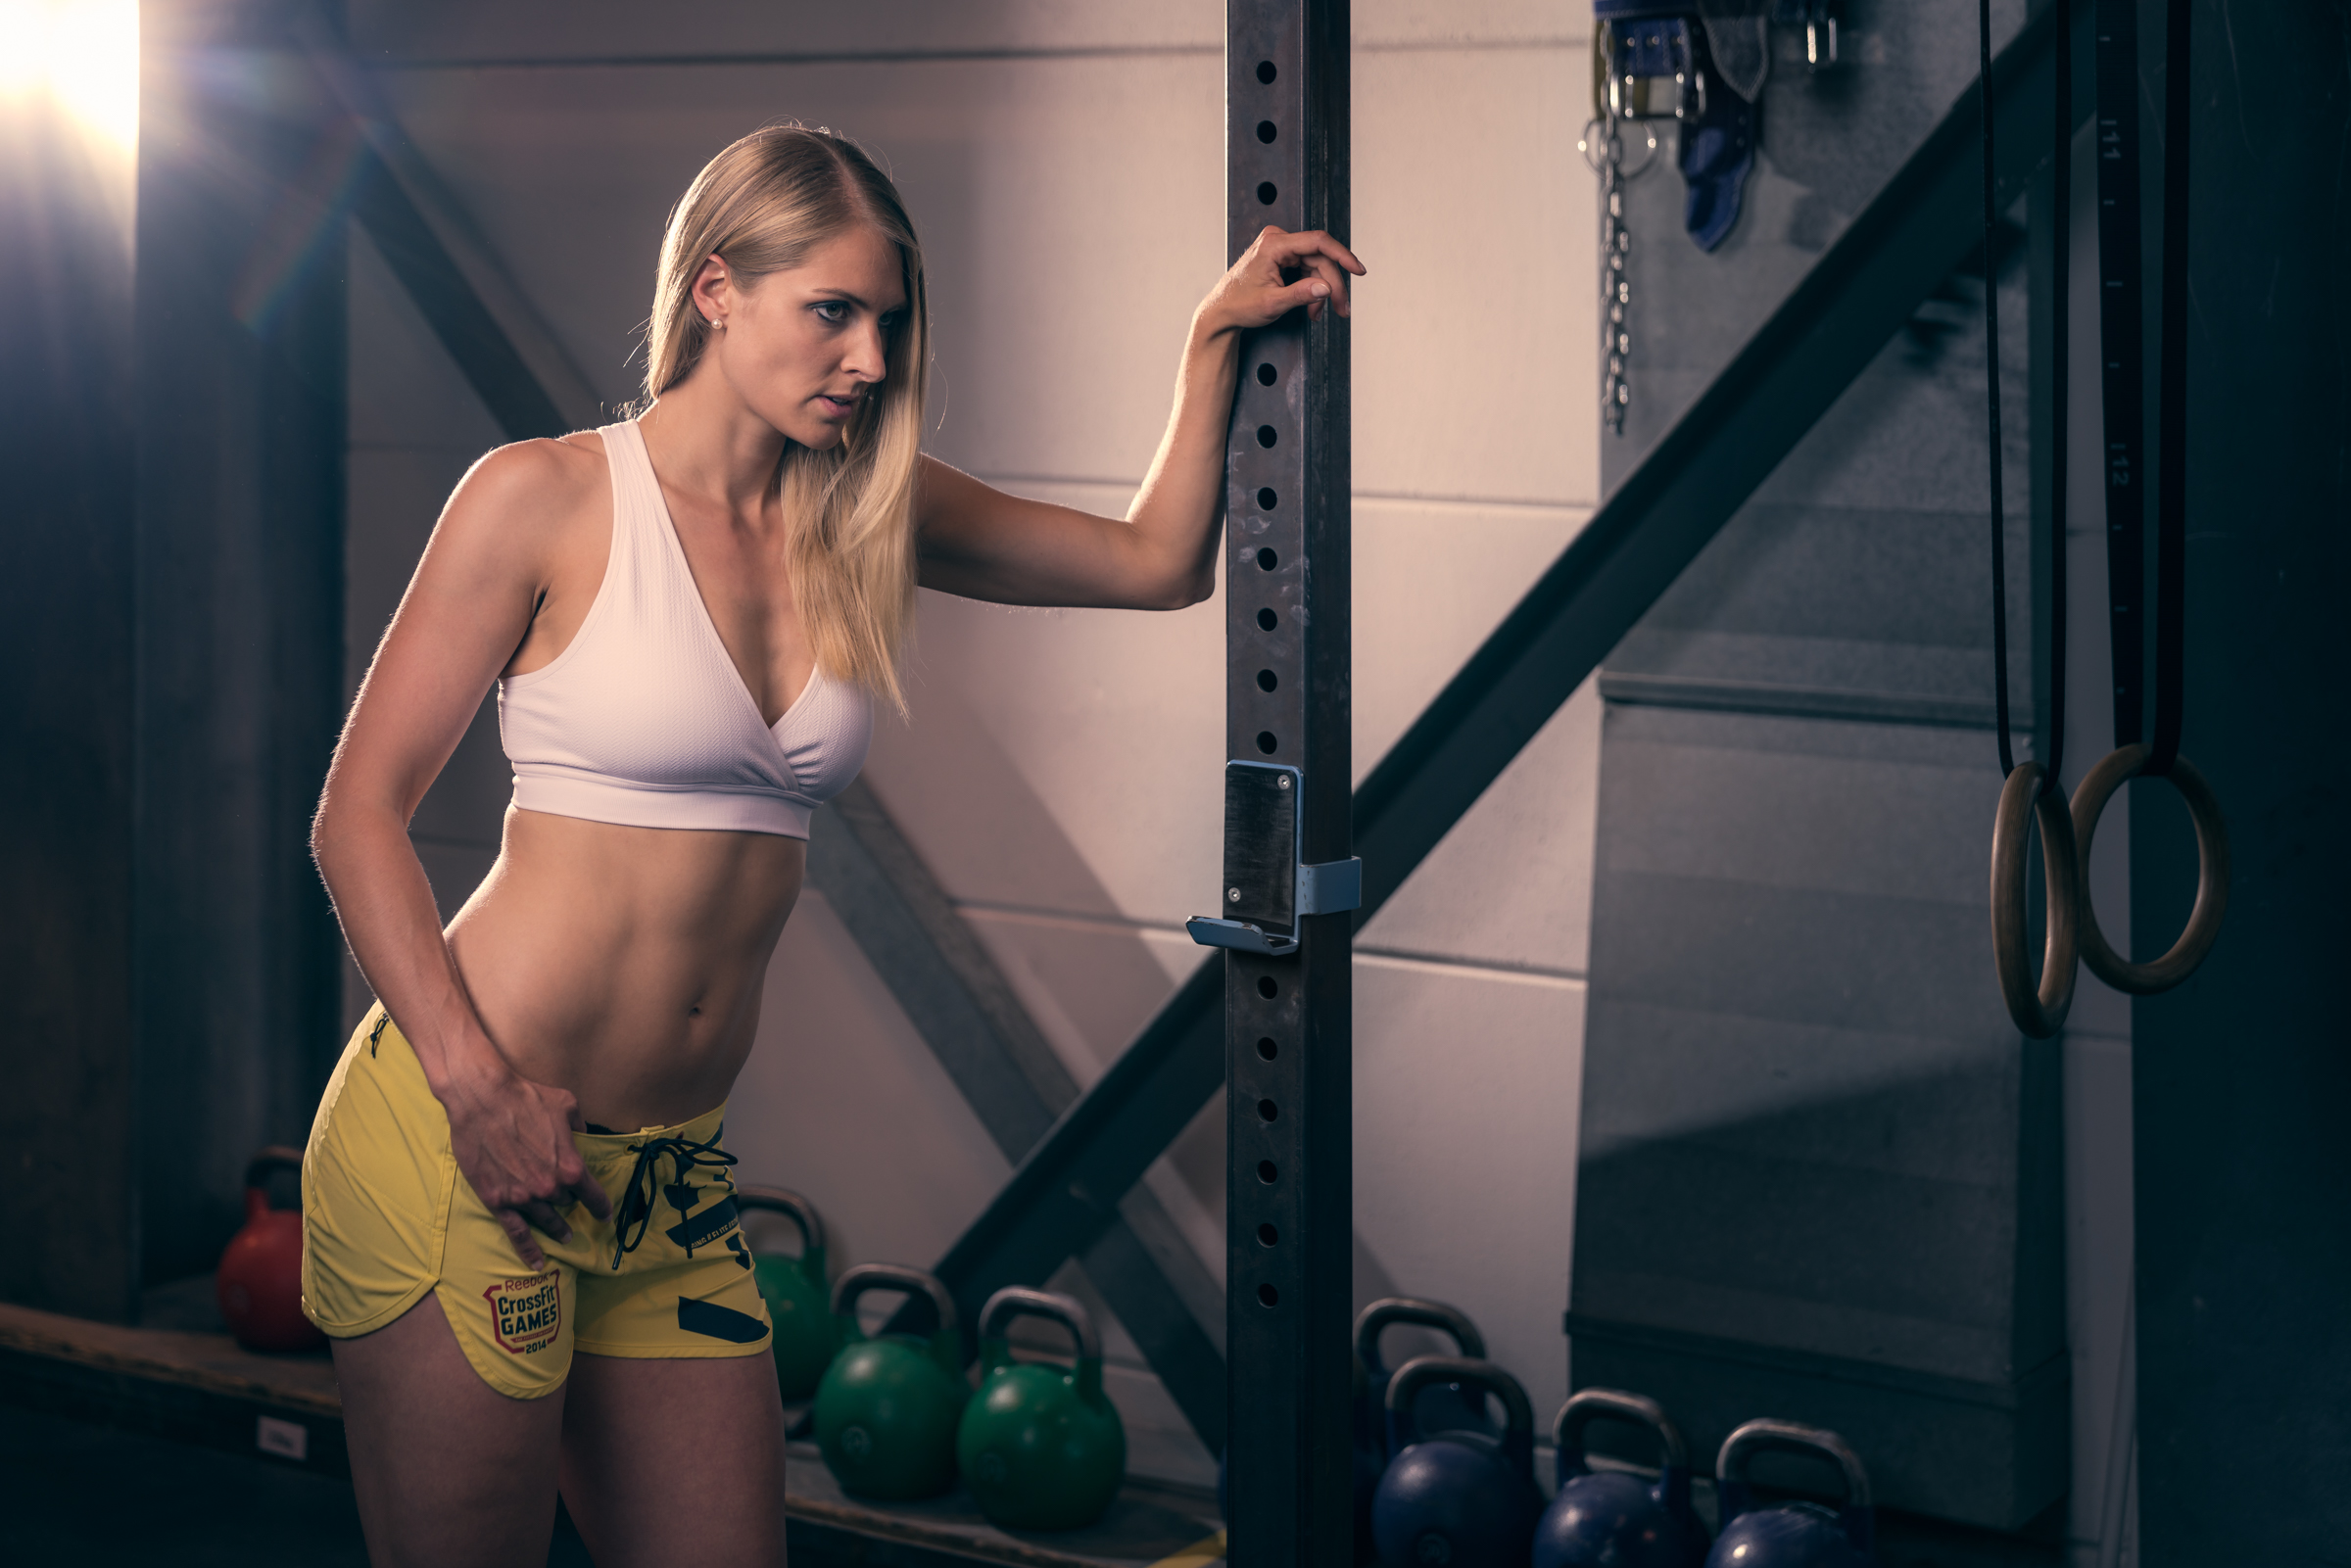 170709_Nadya-Sport-Shooting_A7R2-296-Edit.jpg